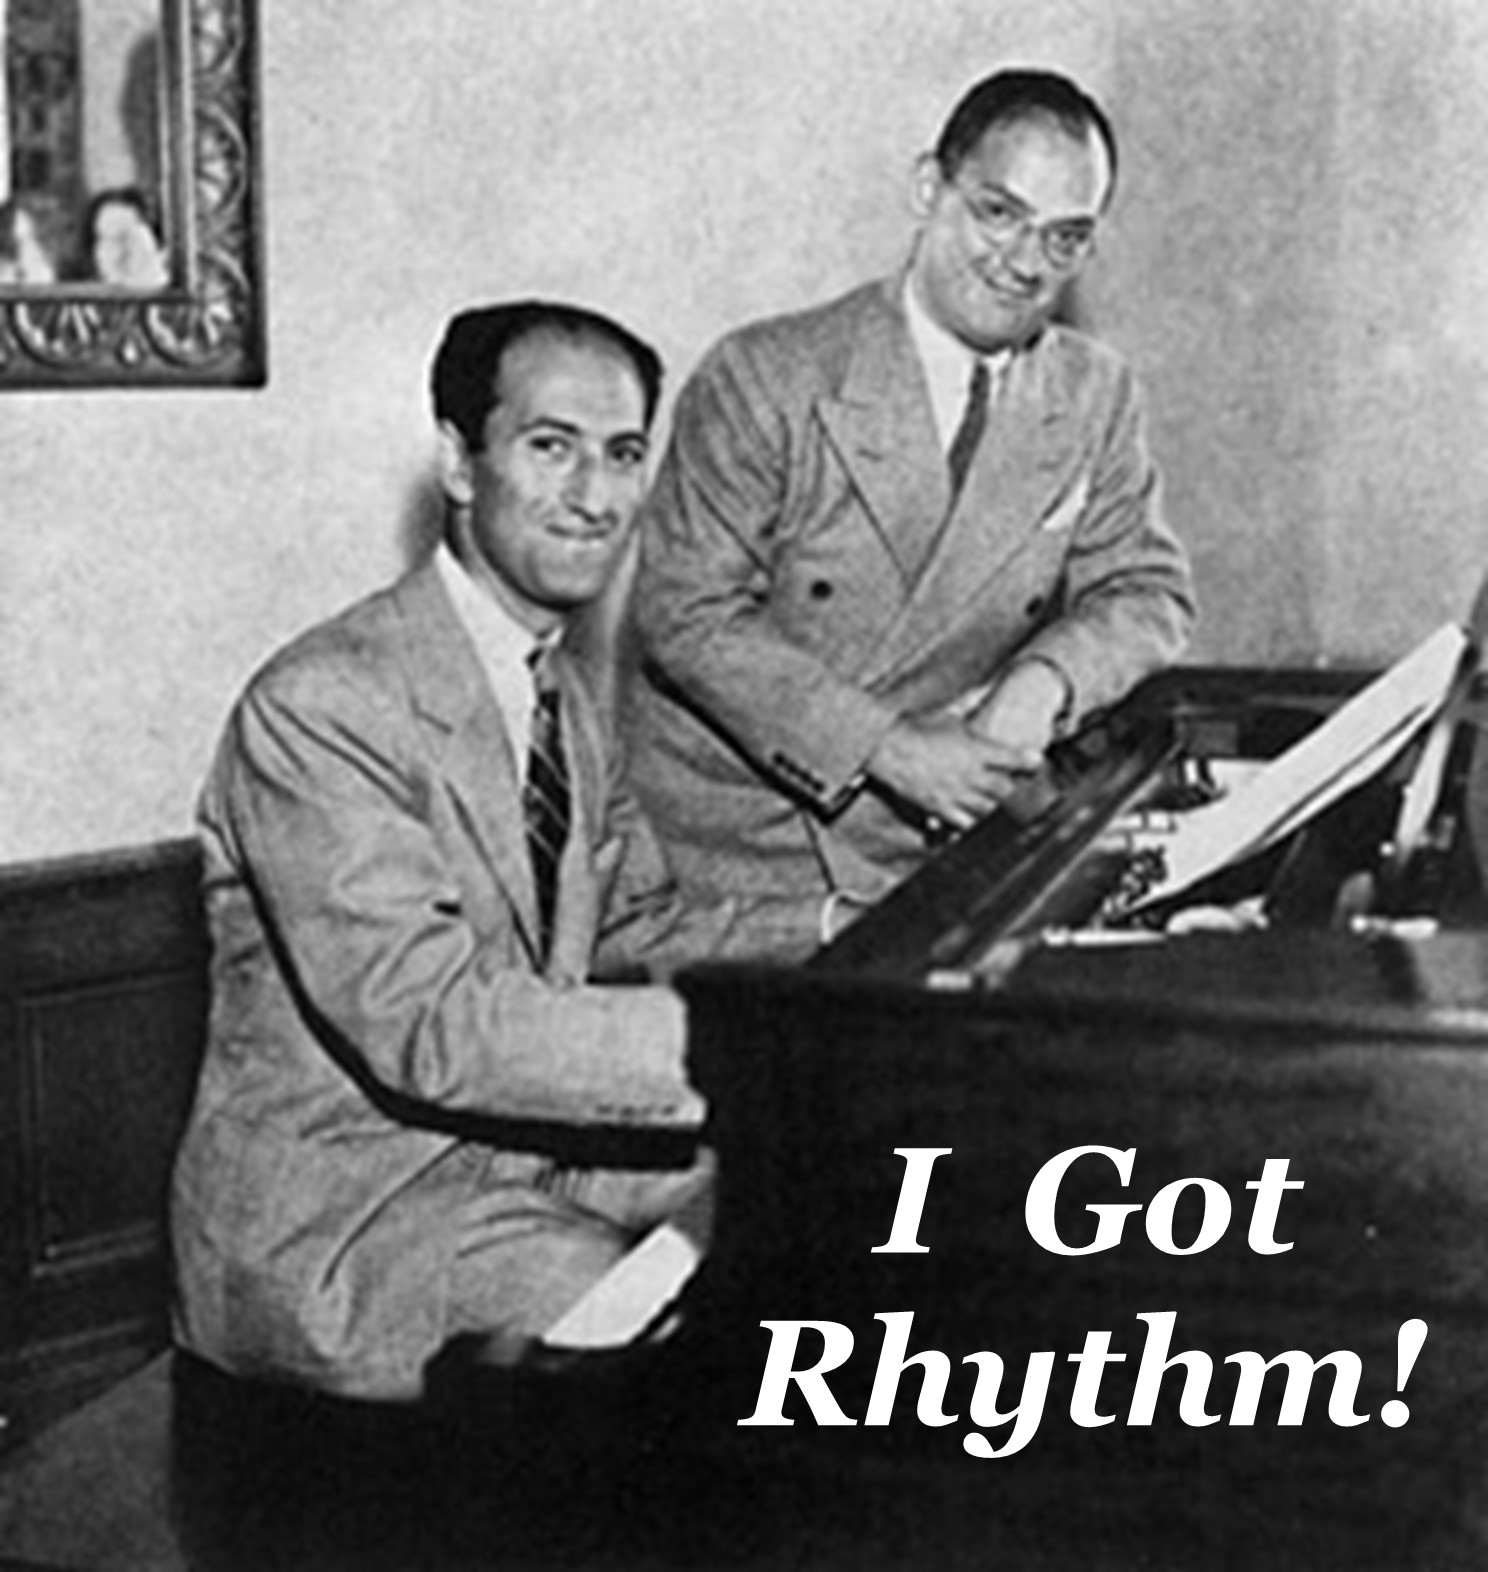 a review of george gershwins i got rhythm I want to use the piano as a stepping stone - george gerswhin  a song without music is a lot like h2 without the o — ira gershwin george gershwin wrote most of his vocal and theatrical works, including more than a dozen broadway shows and several films in collaboration with his elder brother, lyricist ira gershwin.